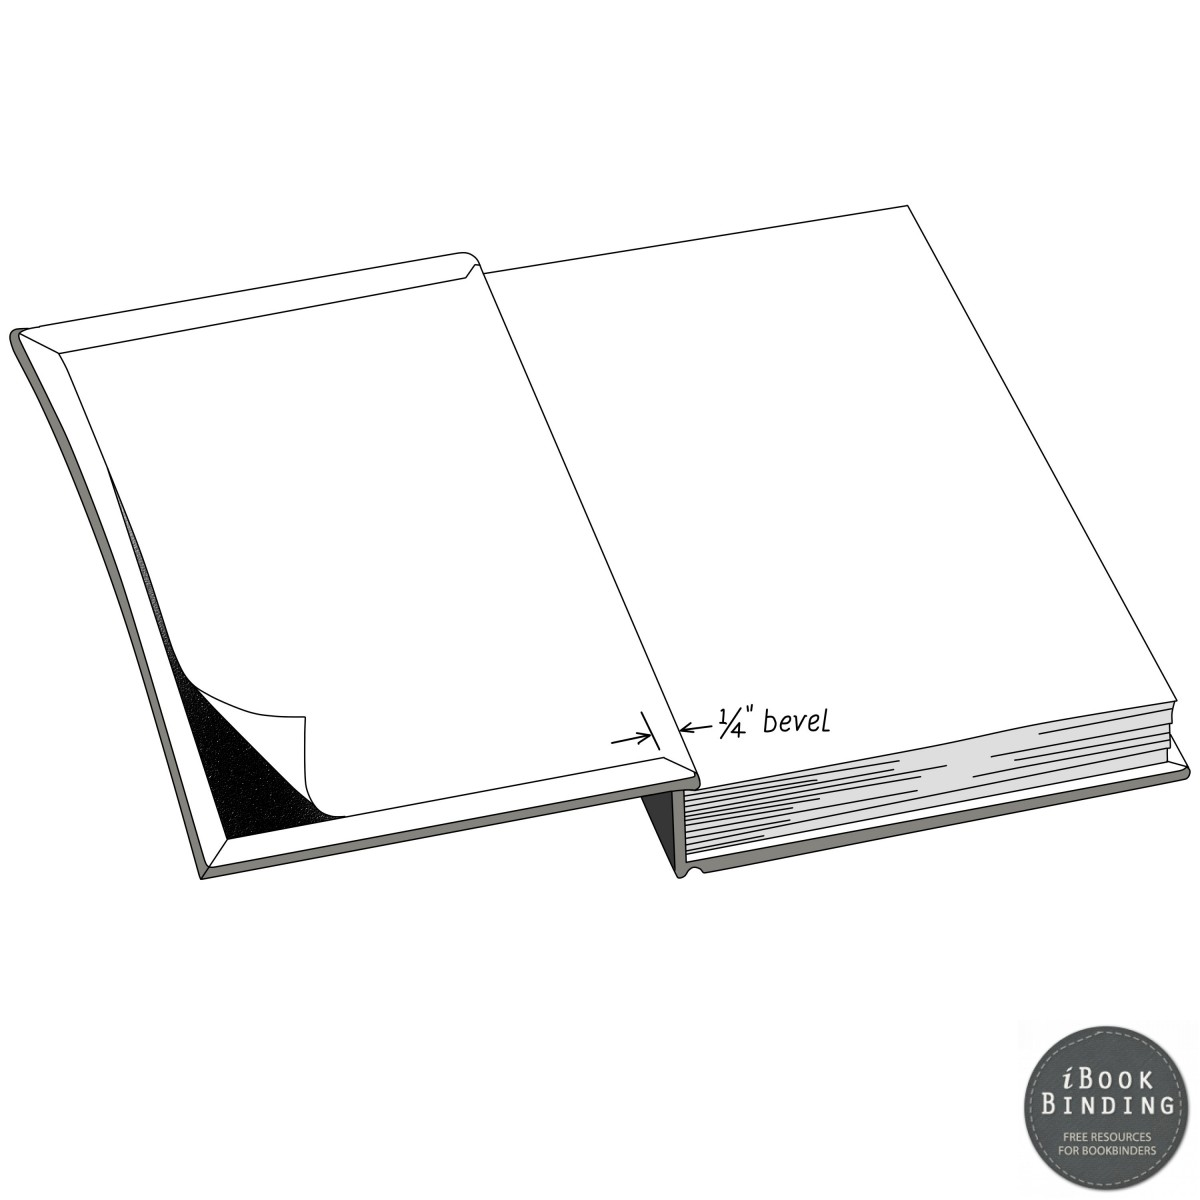 110 - Identifying the bevel at end sheet after pasting (book binding instructional diagram)